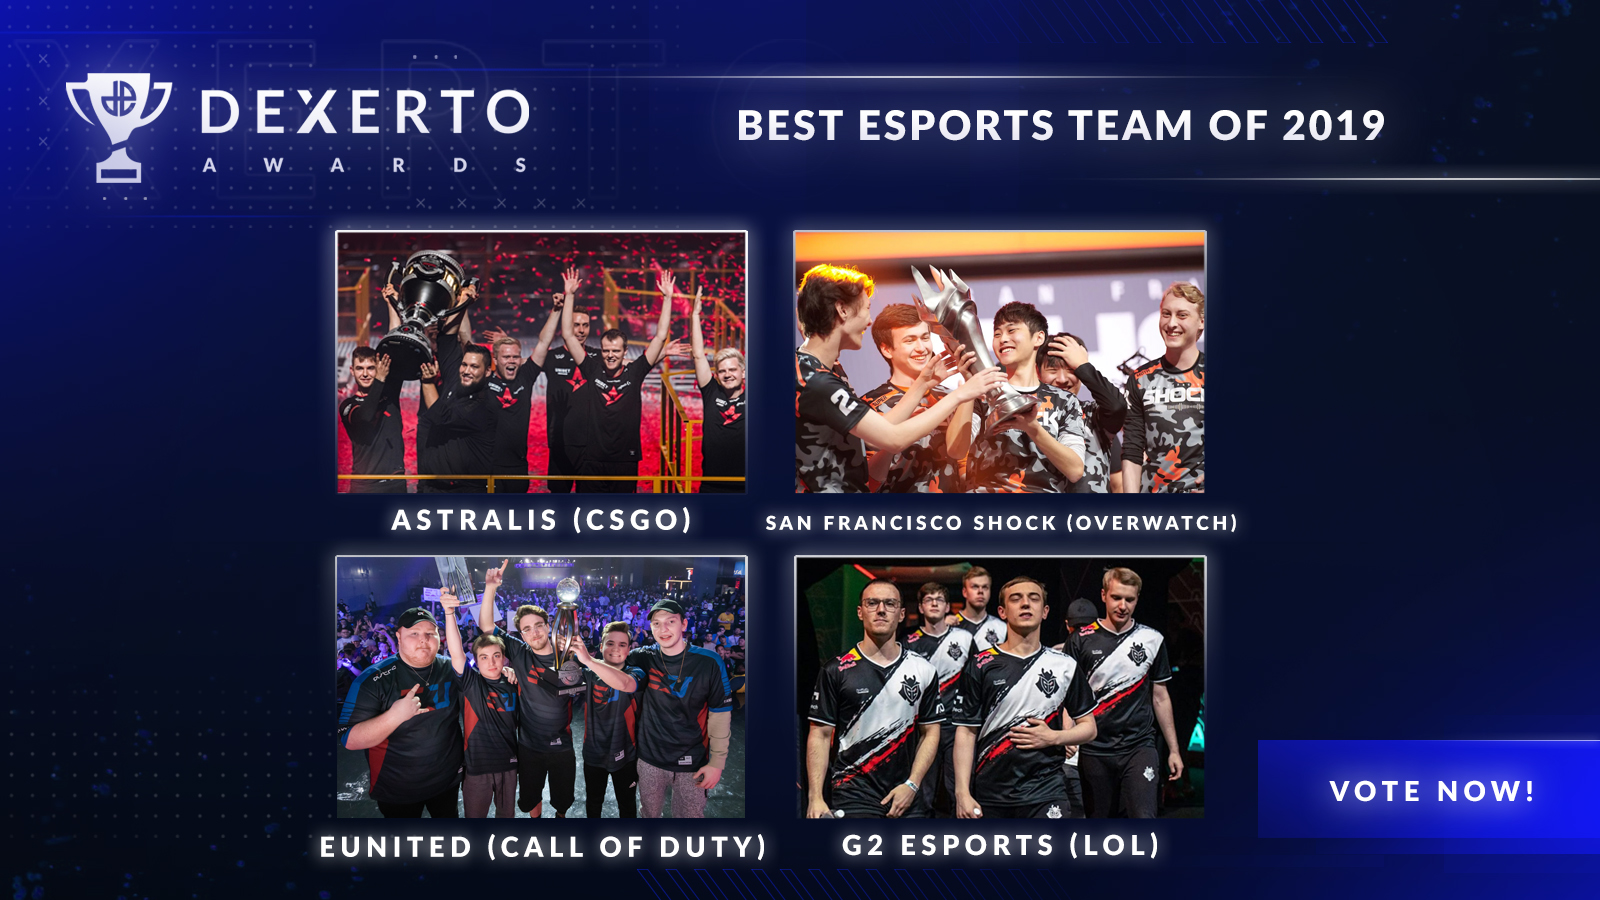 The best esports teams of 2019